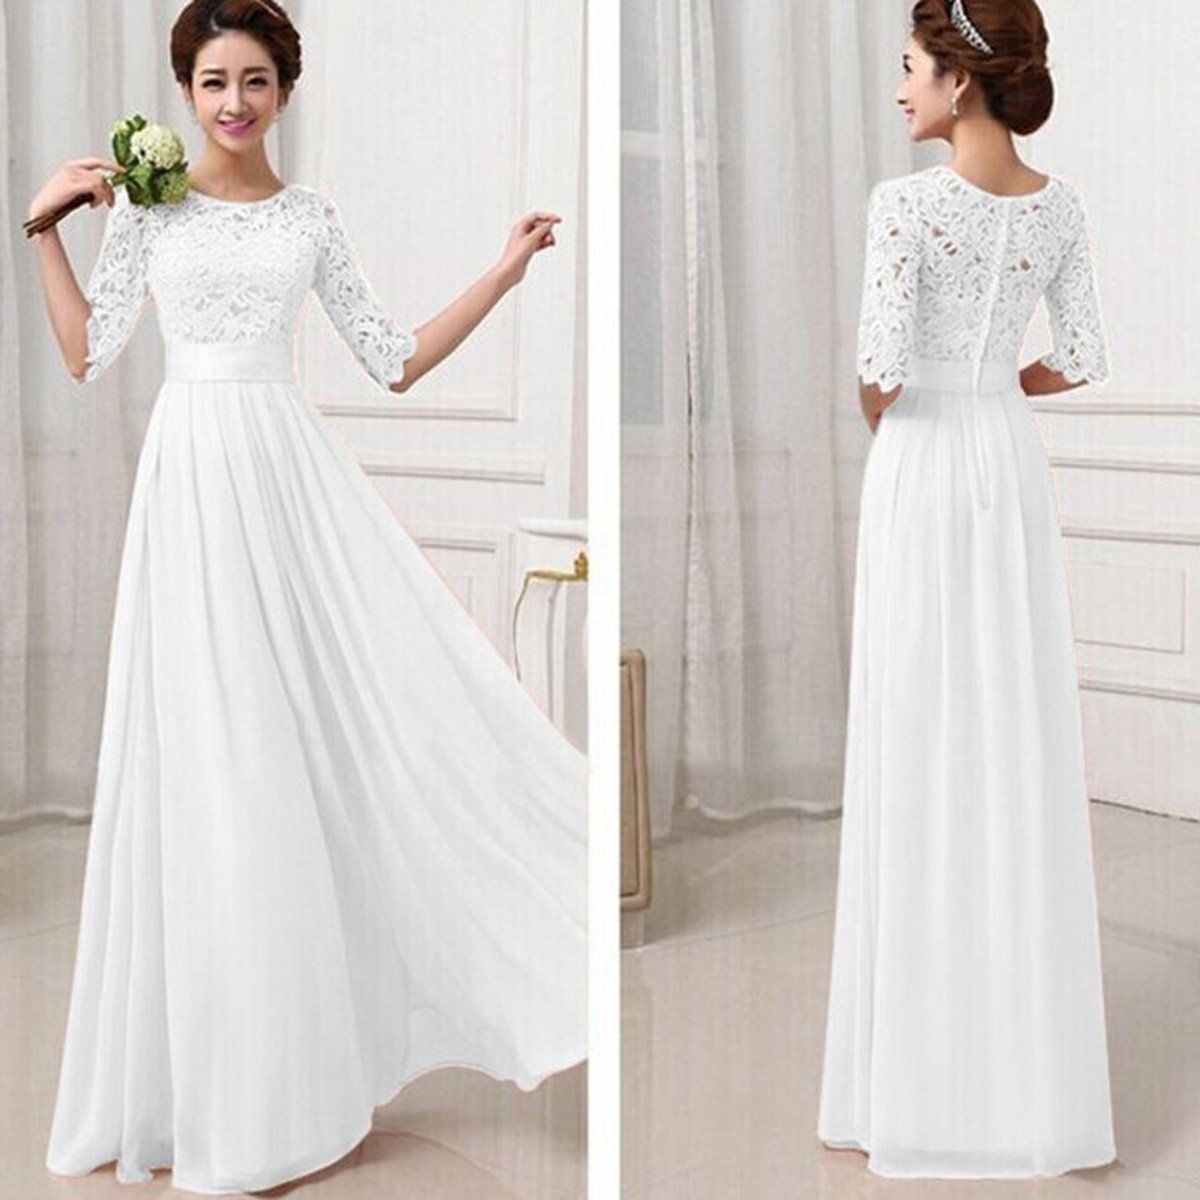 Lace Chiffon Patchwork High Waist Half Sleeves Long Party ...